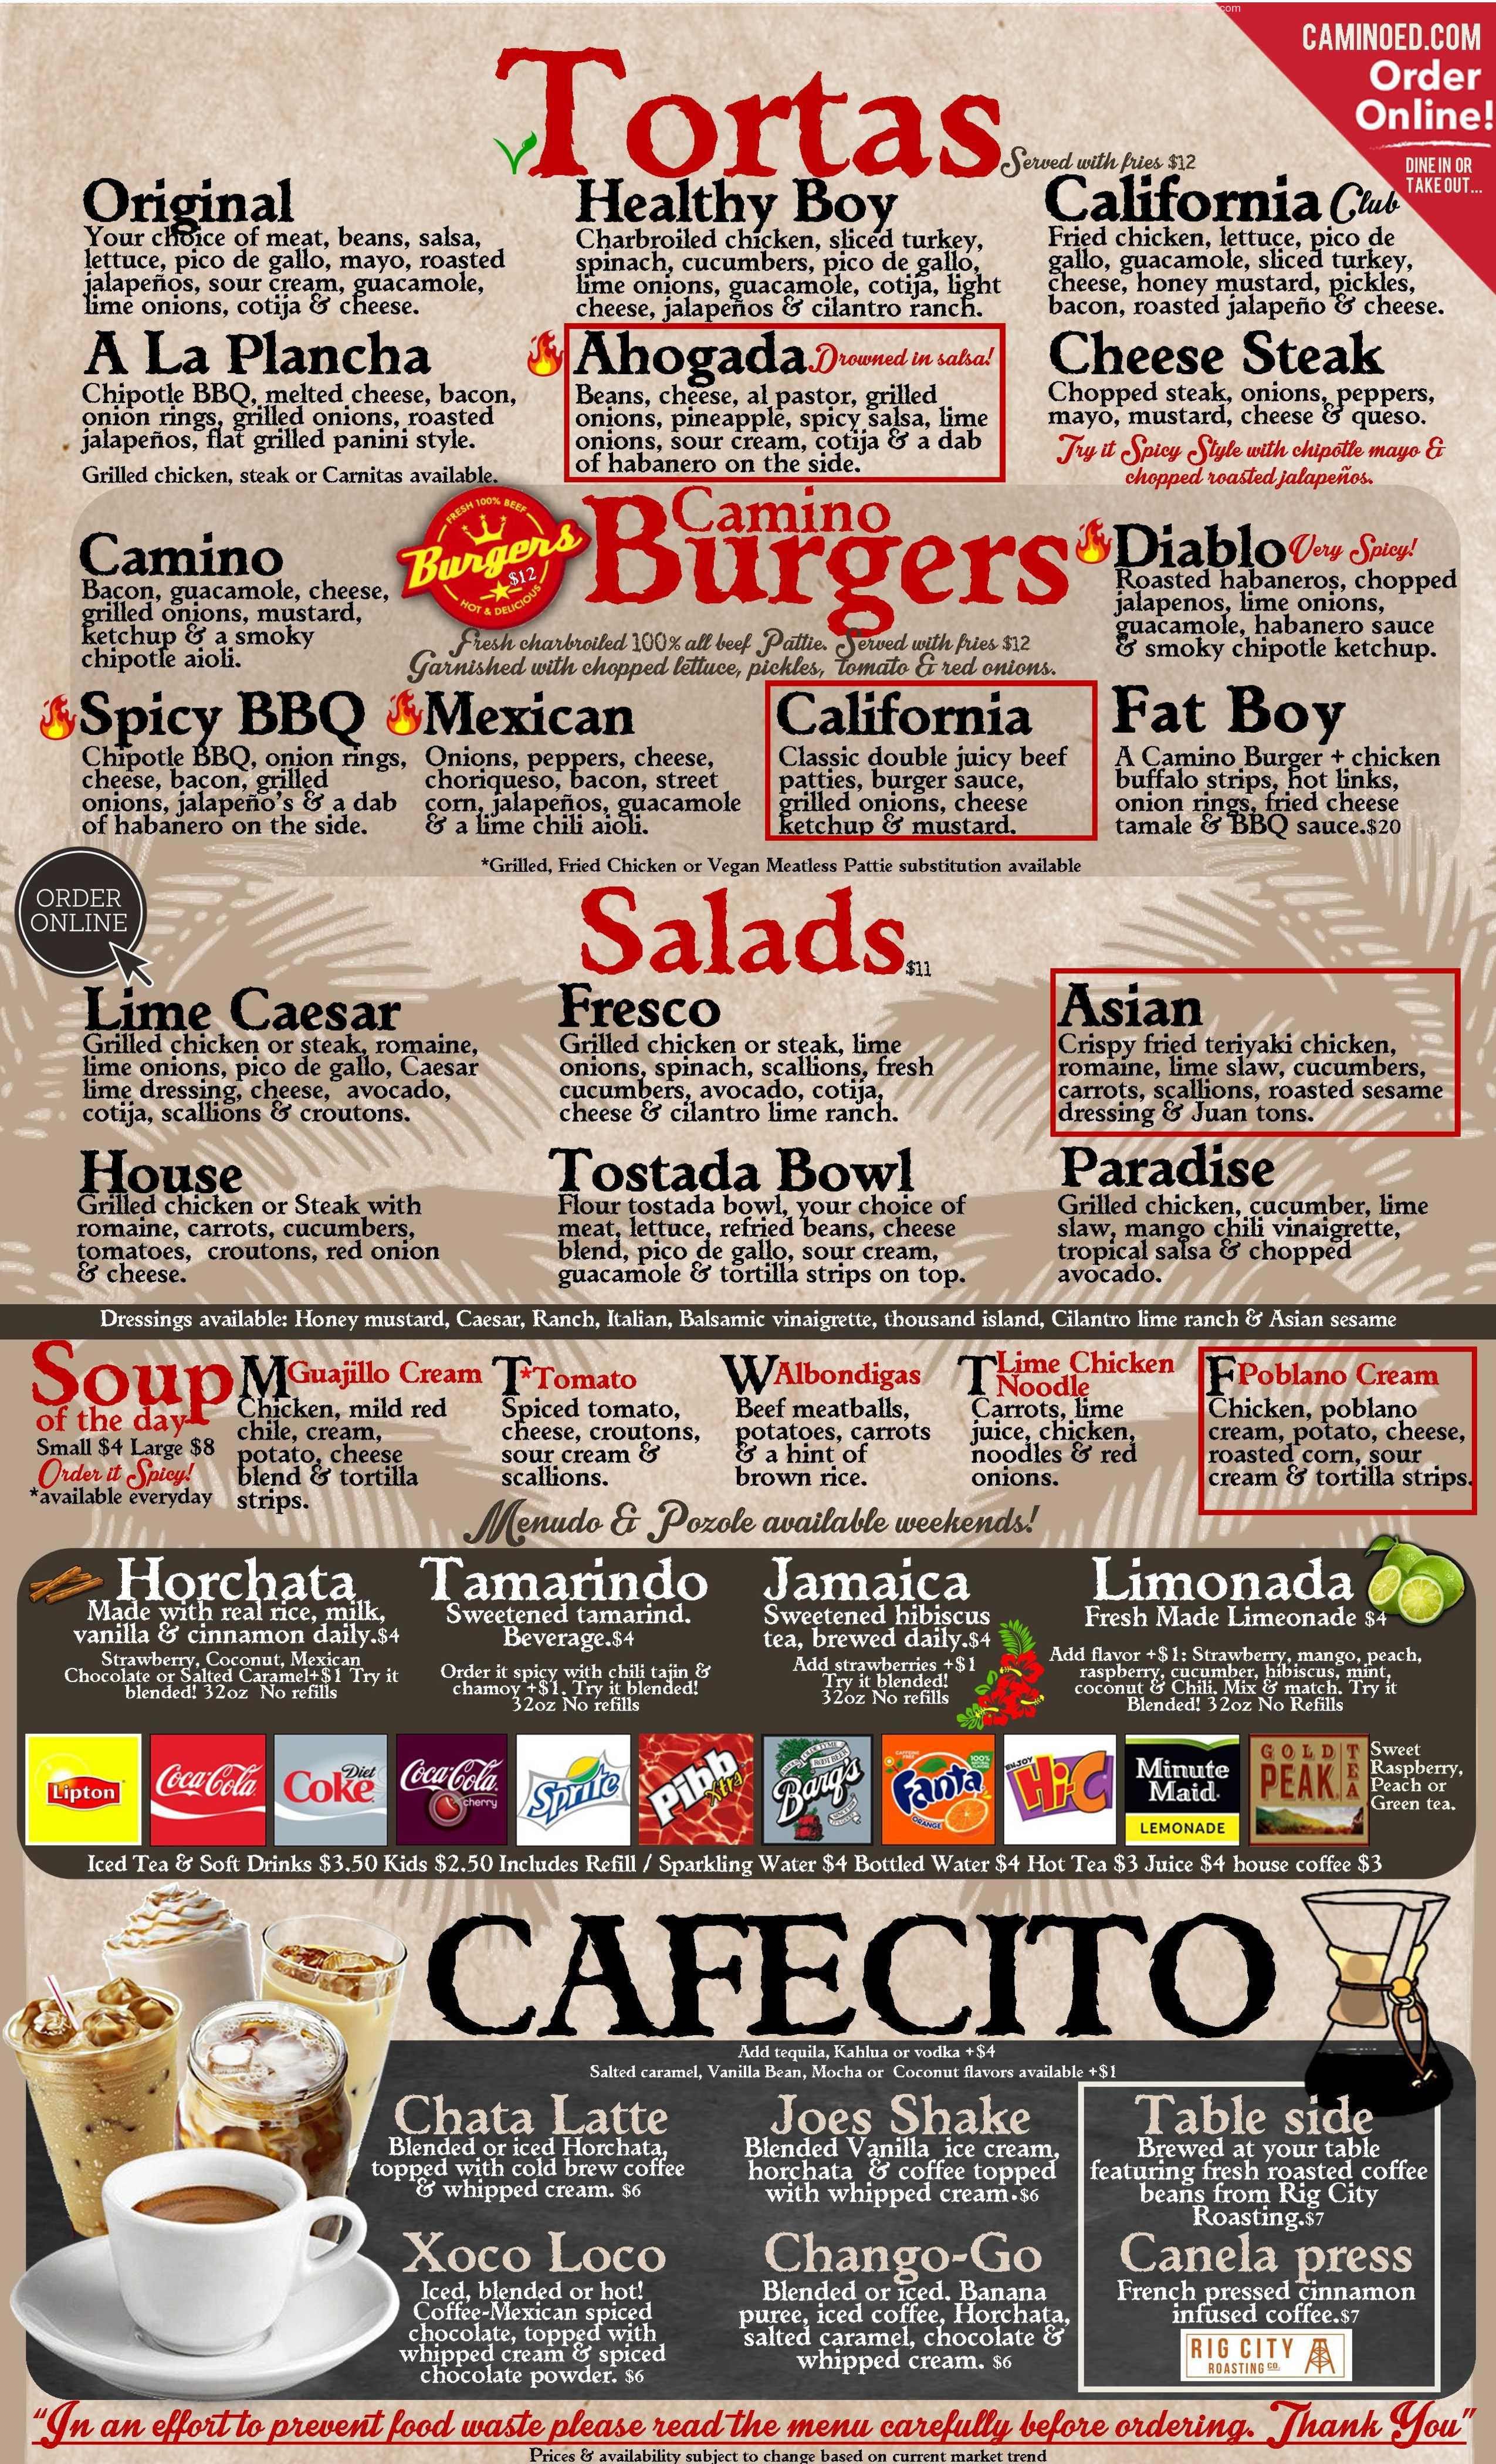 Online Menu Of Camino Real Kitchen Tequila Restaurant Bakersfield California 93313 Zmenu - Camino Real Restaurant Bakersfield